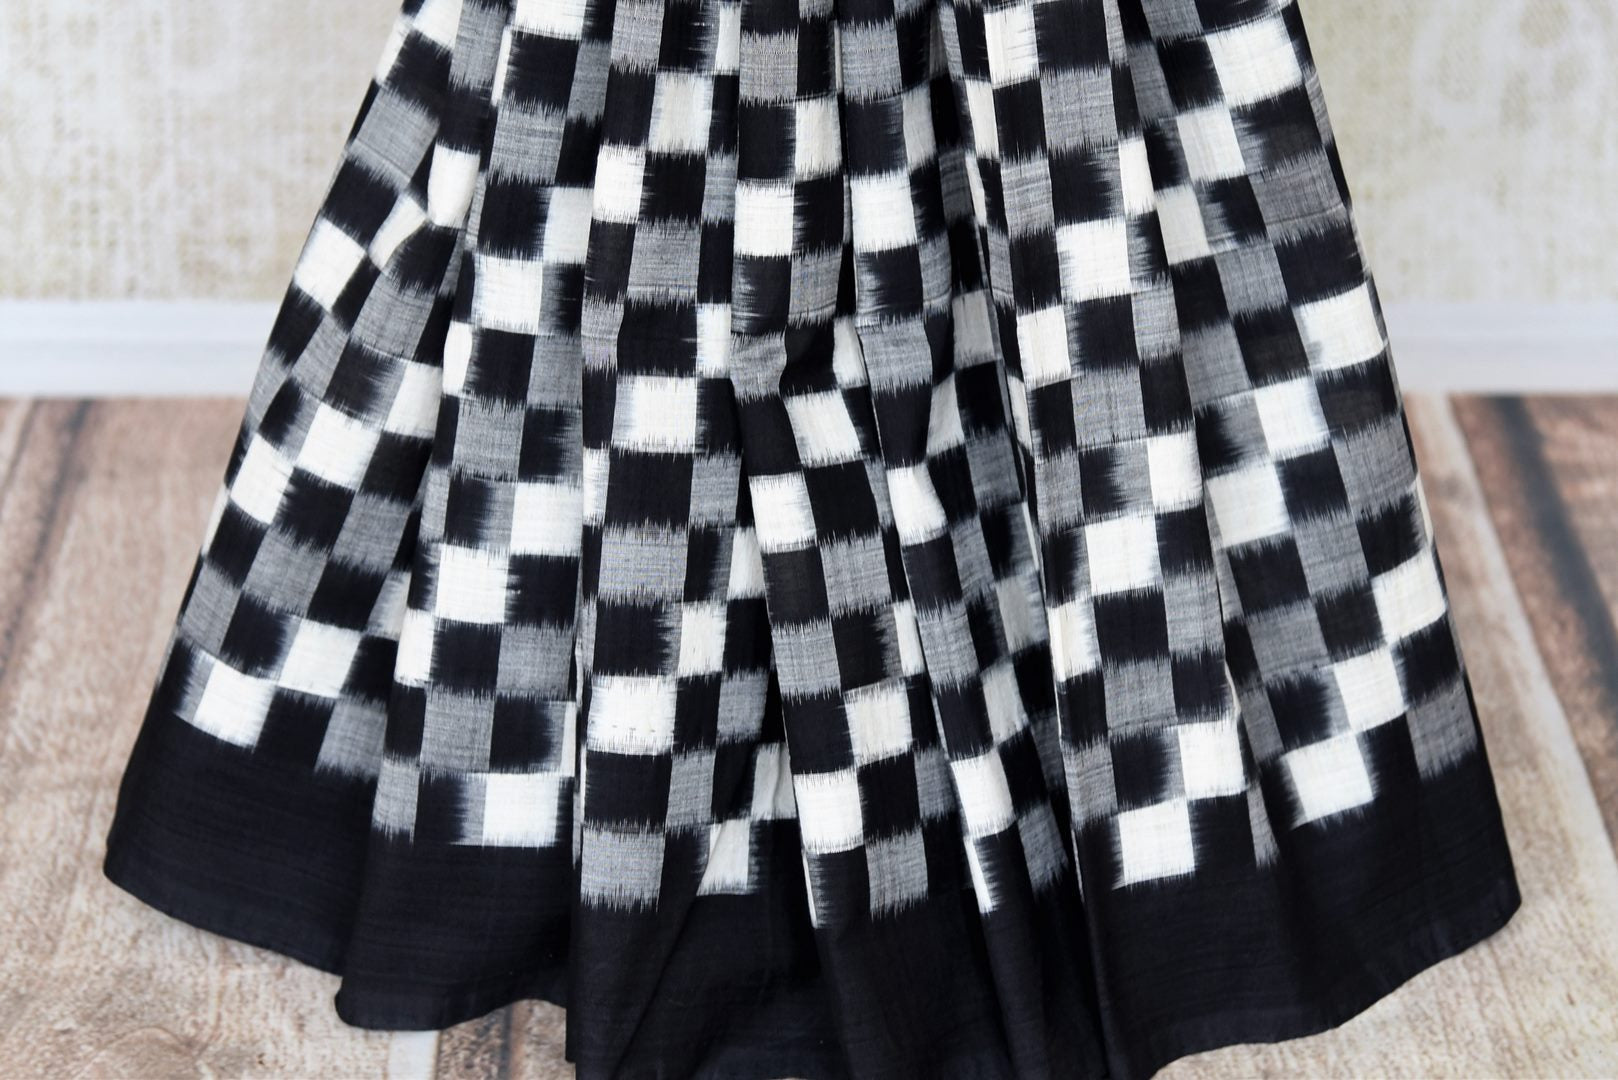 Shop black grey and white square ikkat cotton saree online in USA. Shop more such exquisite Indian handloom saris in USA from Pure Elegance. Get floored by a range of designer sarees, pure silk sarees, Kanchipuram silk saris at our Indian fashion store in USA.-pleats